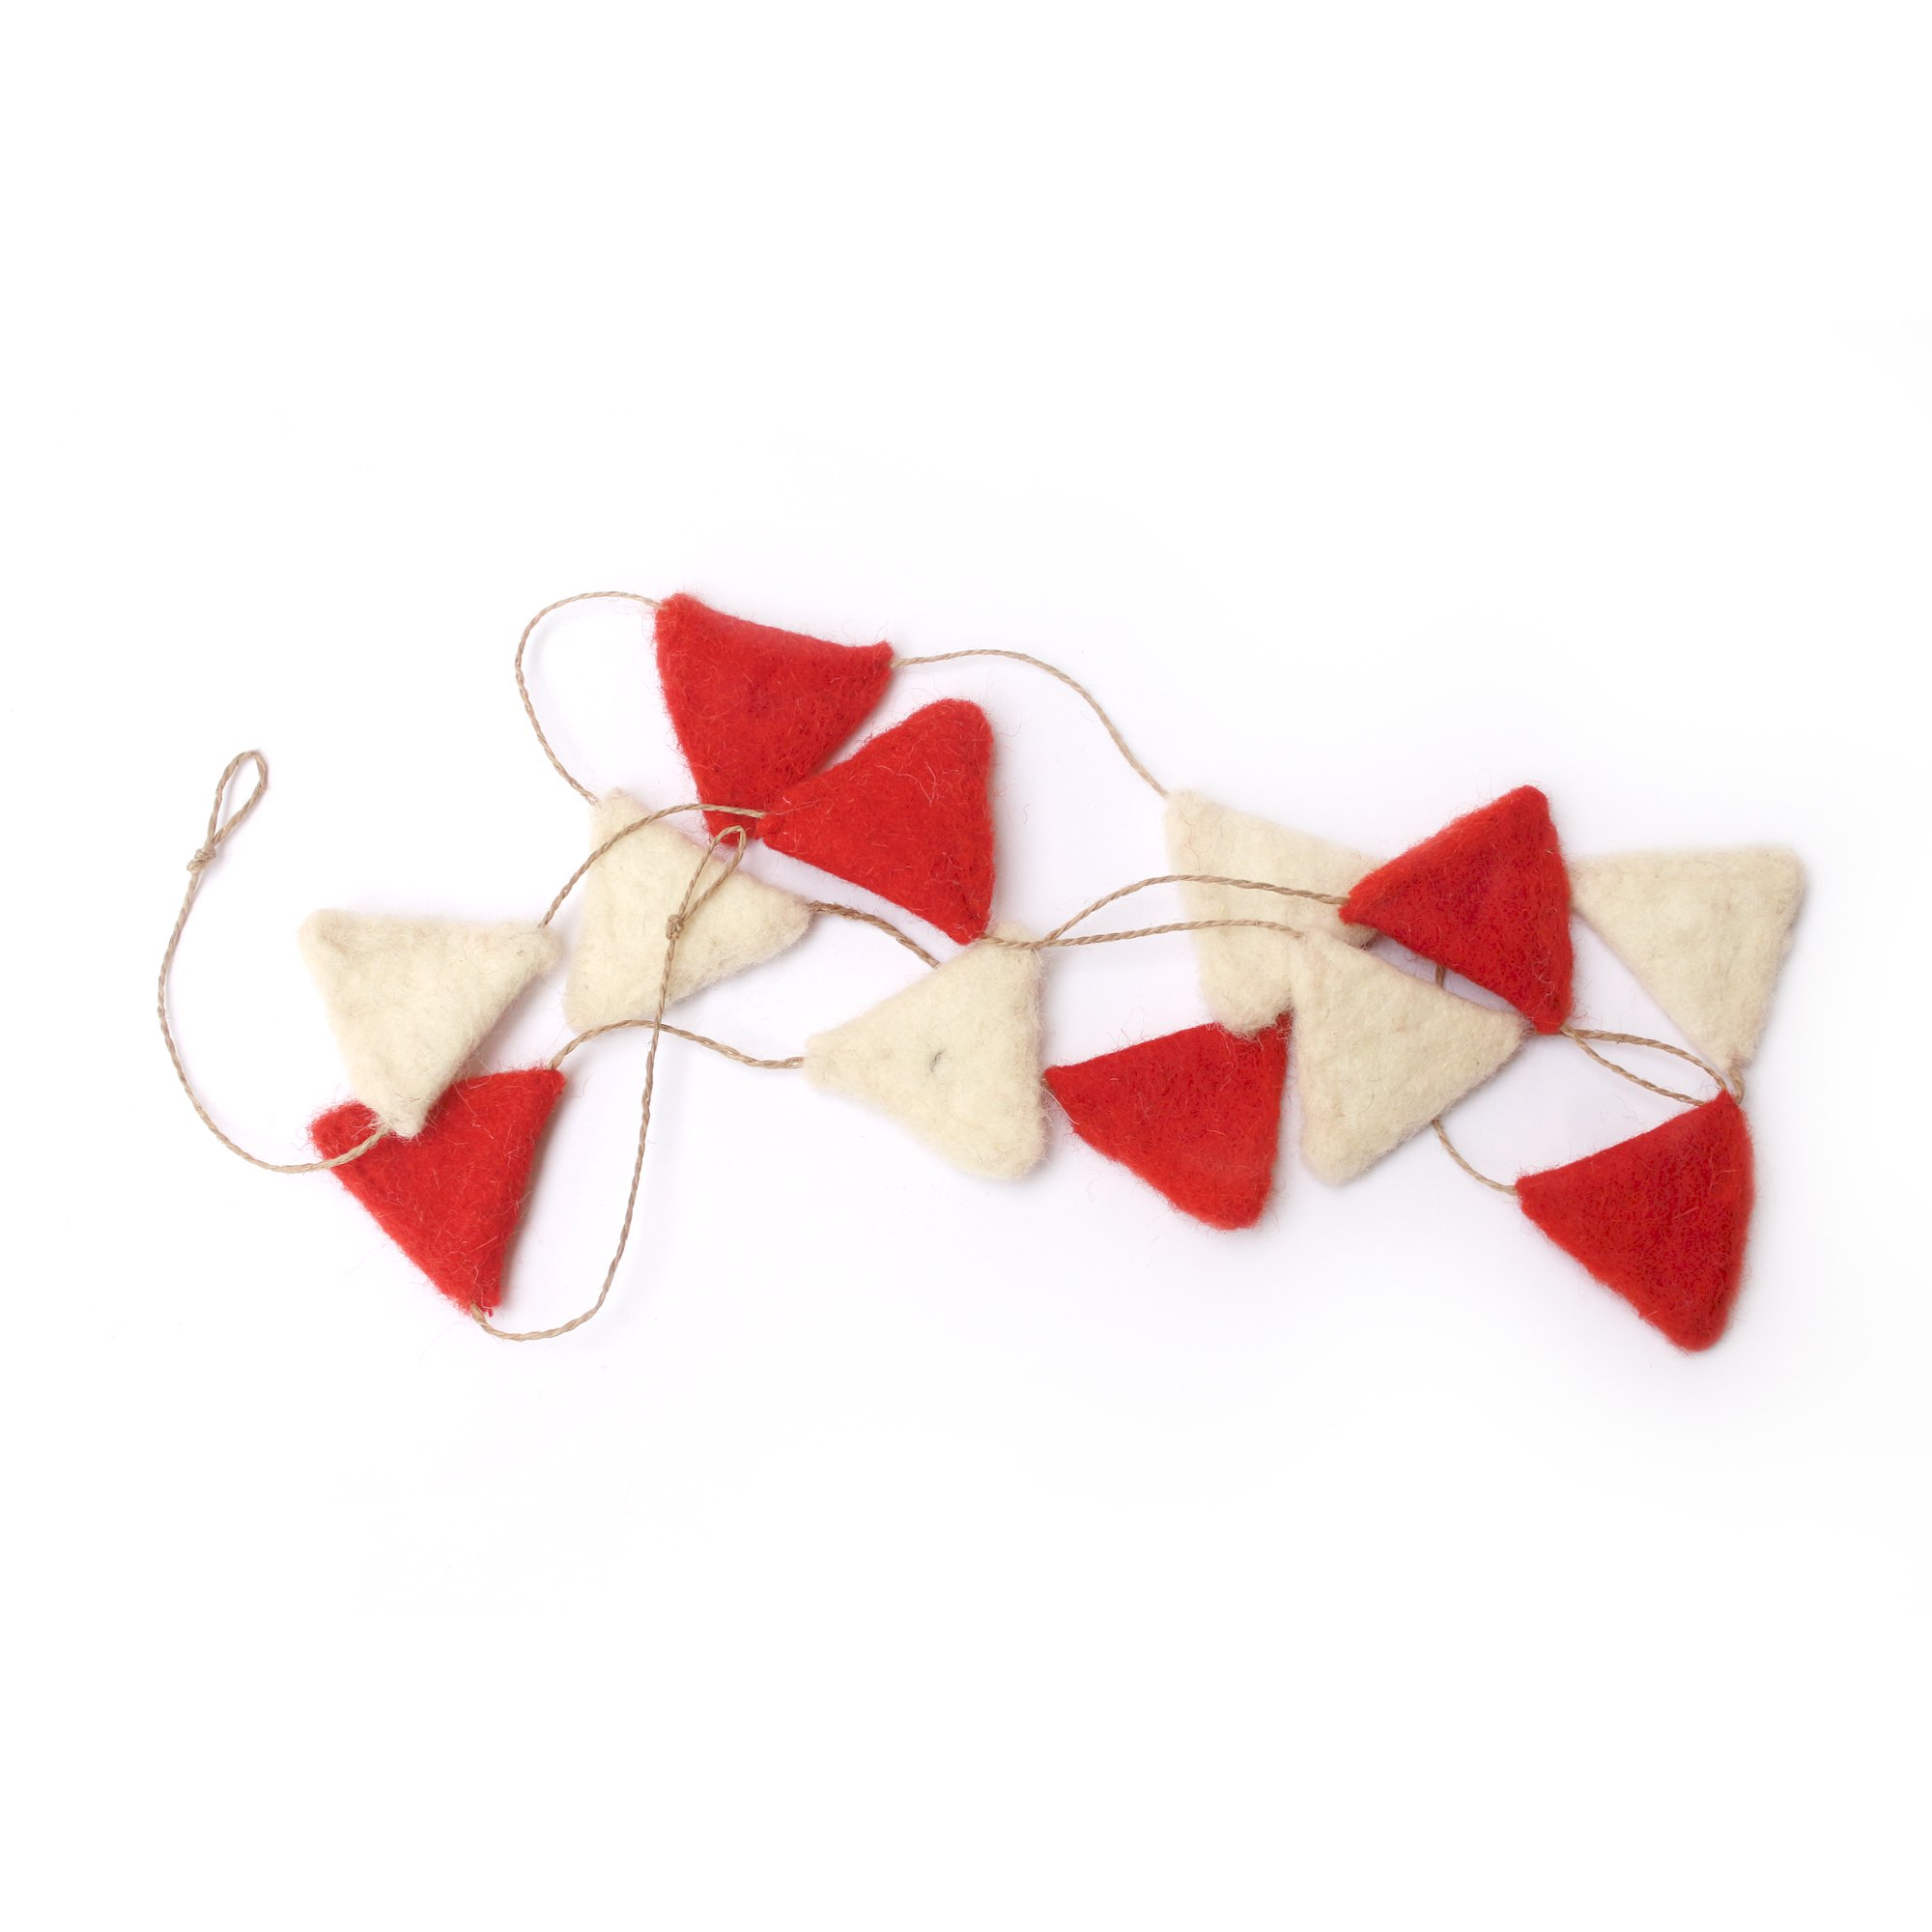 De Kulture Works Triangle Felt Christmas Garlands Set of 2 (Red and Off-White)